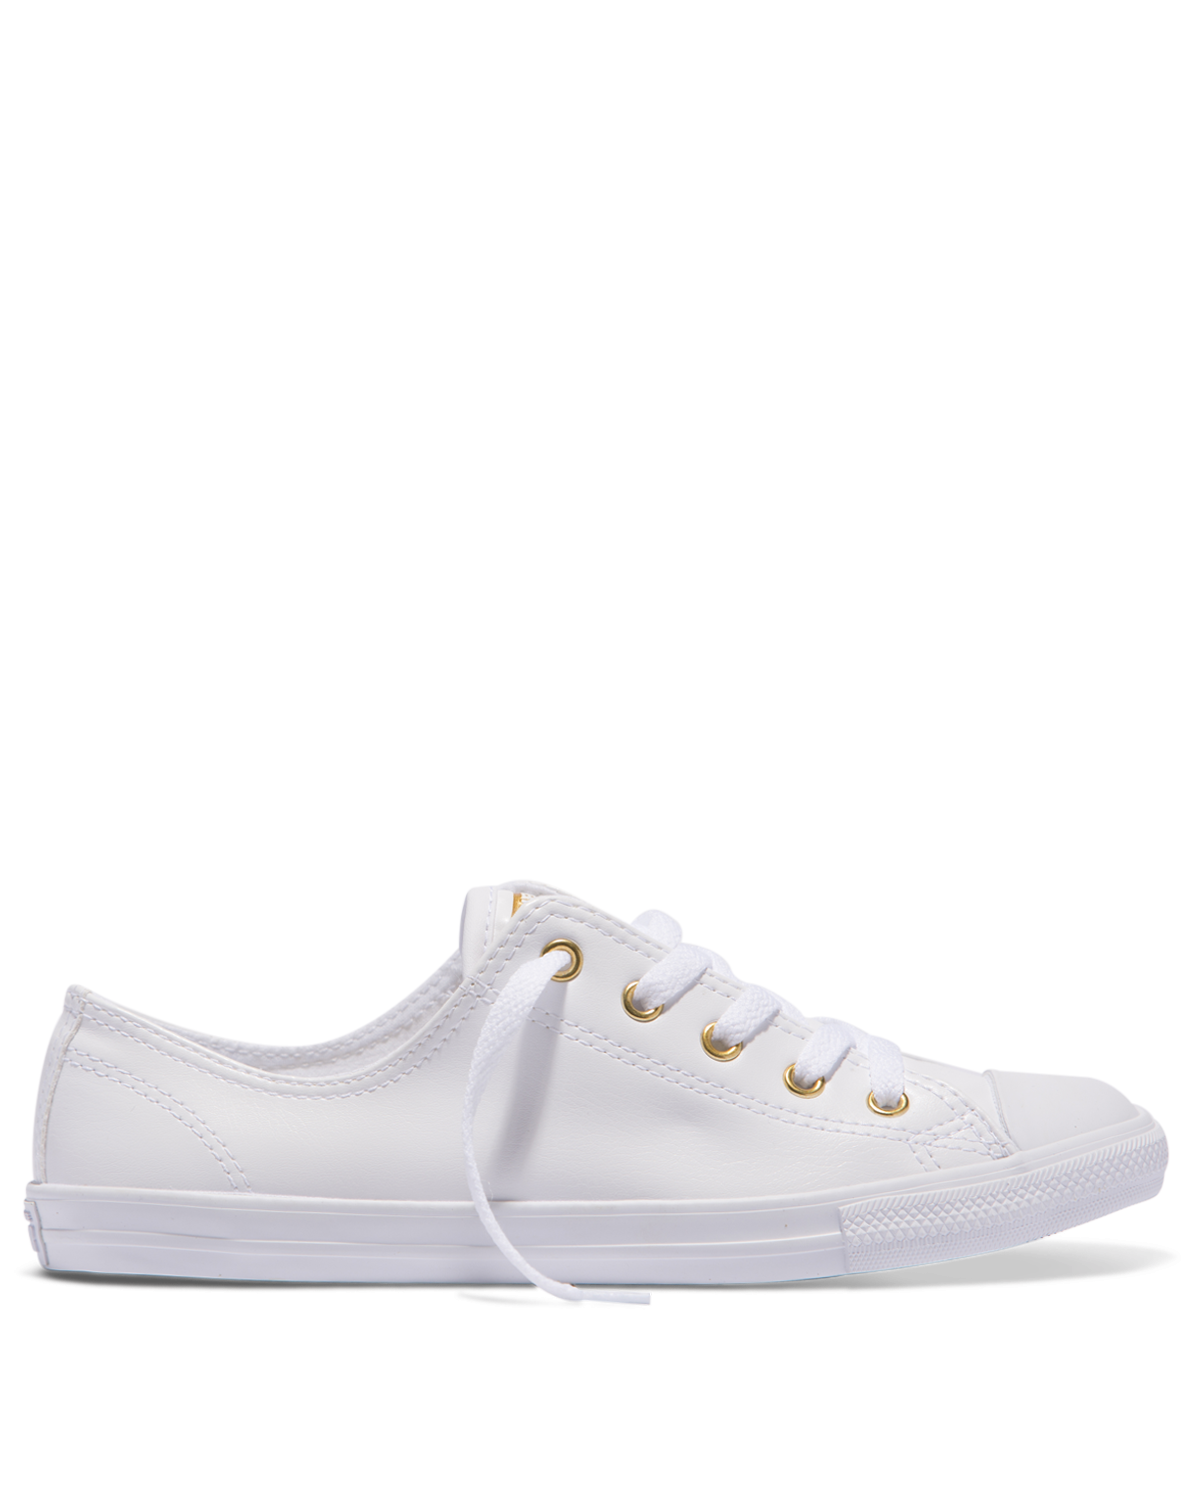 9a21cc1aa0d4 Converse Chuck Taylor Dainty Craft SL Low Top - White is a low profile